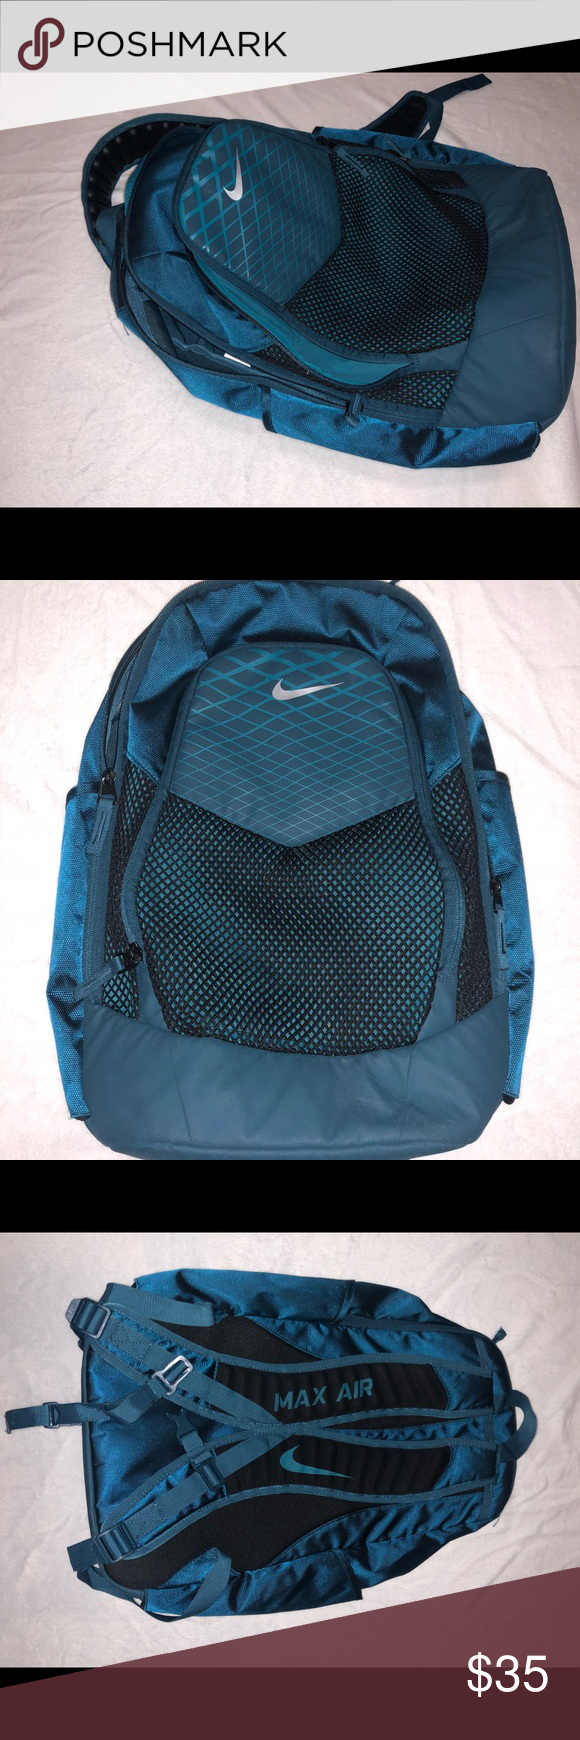 d45a7a93c5 Nike max air unisex backpack Two big pockets one small. New condition barley  used. Nike Bags Backpacks